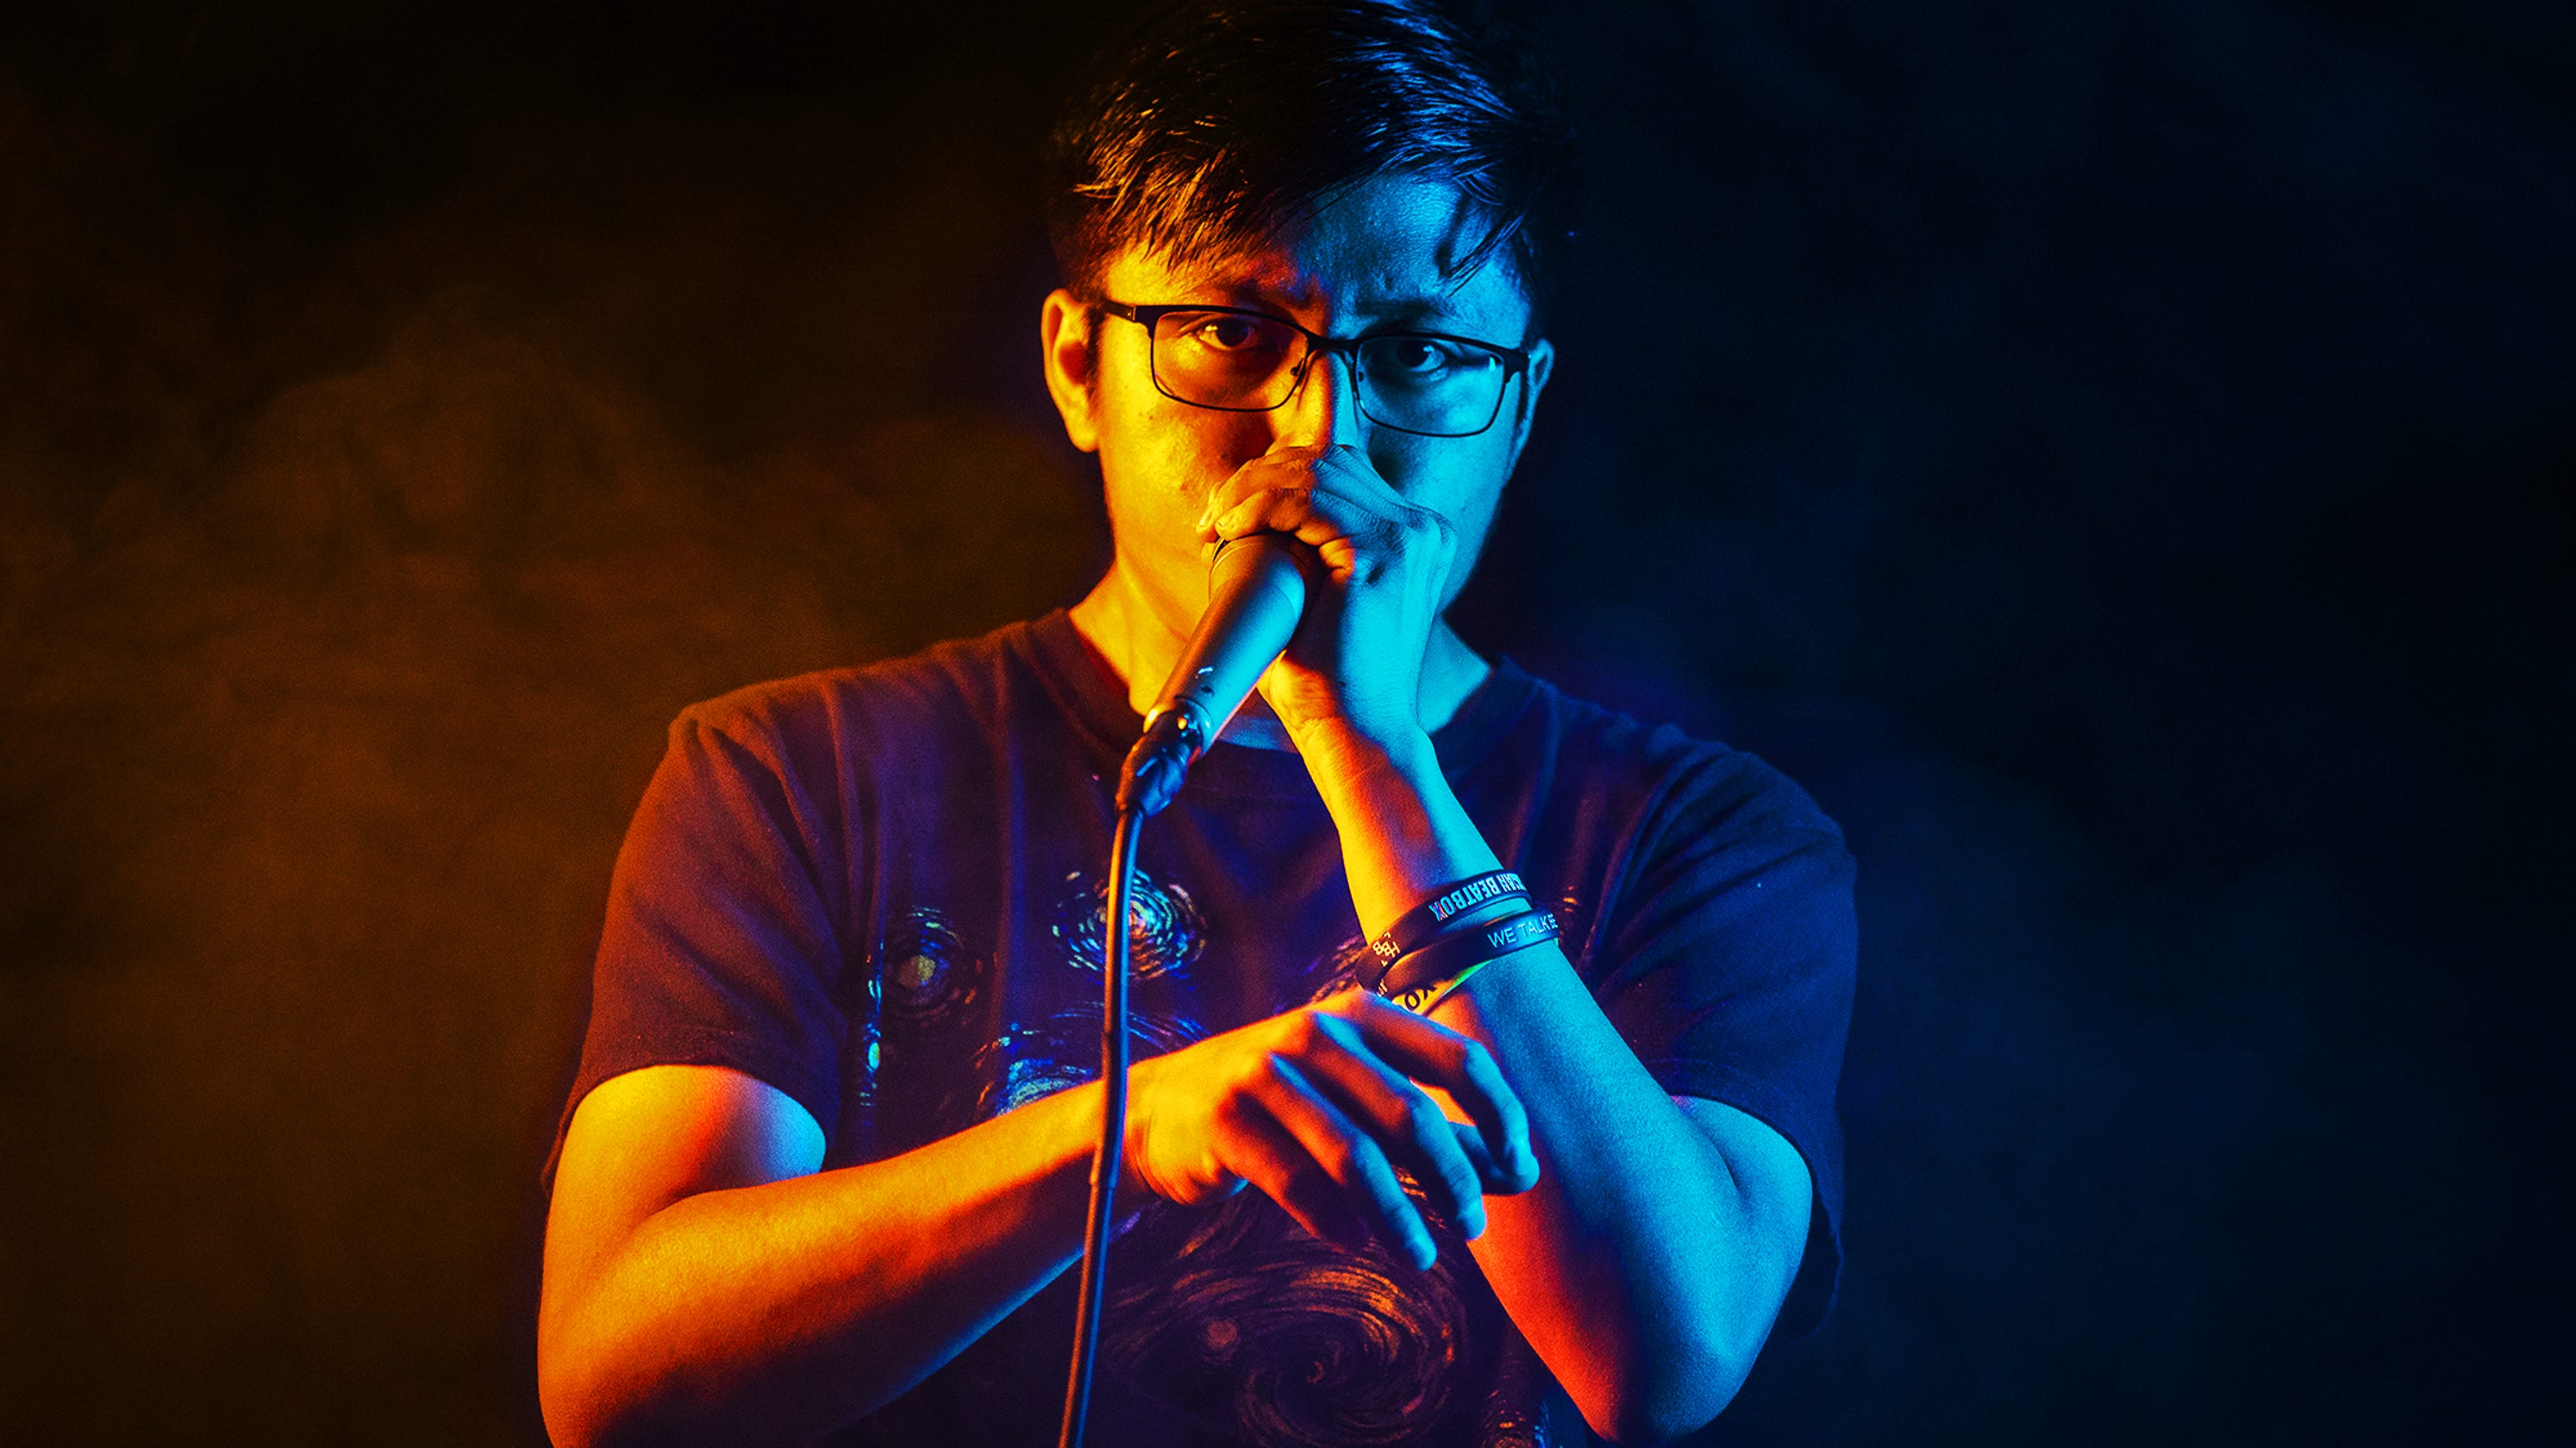 He's got the beat: Louisville-based beatboxer is one of the best in the  nation